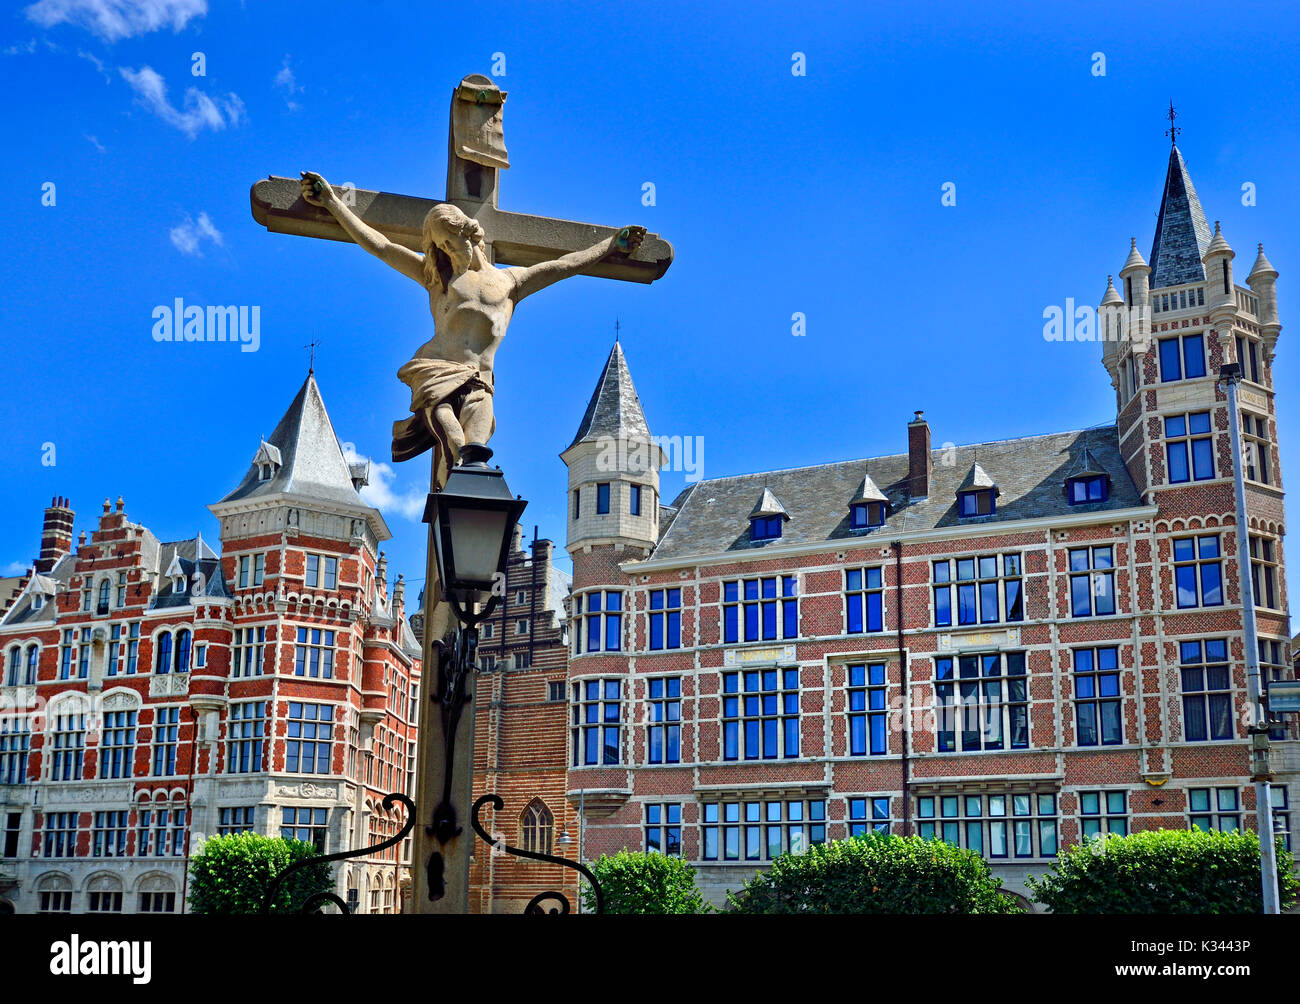 Antwerp, Belgium. View from Het steen - medieval fortress by the river. Stone Crucifix and buildings on Jordaenskaai - Stock Image